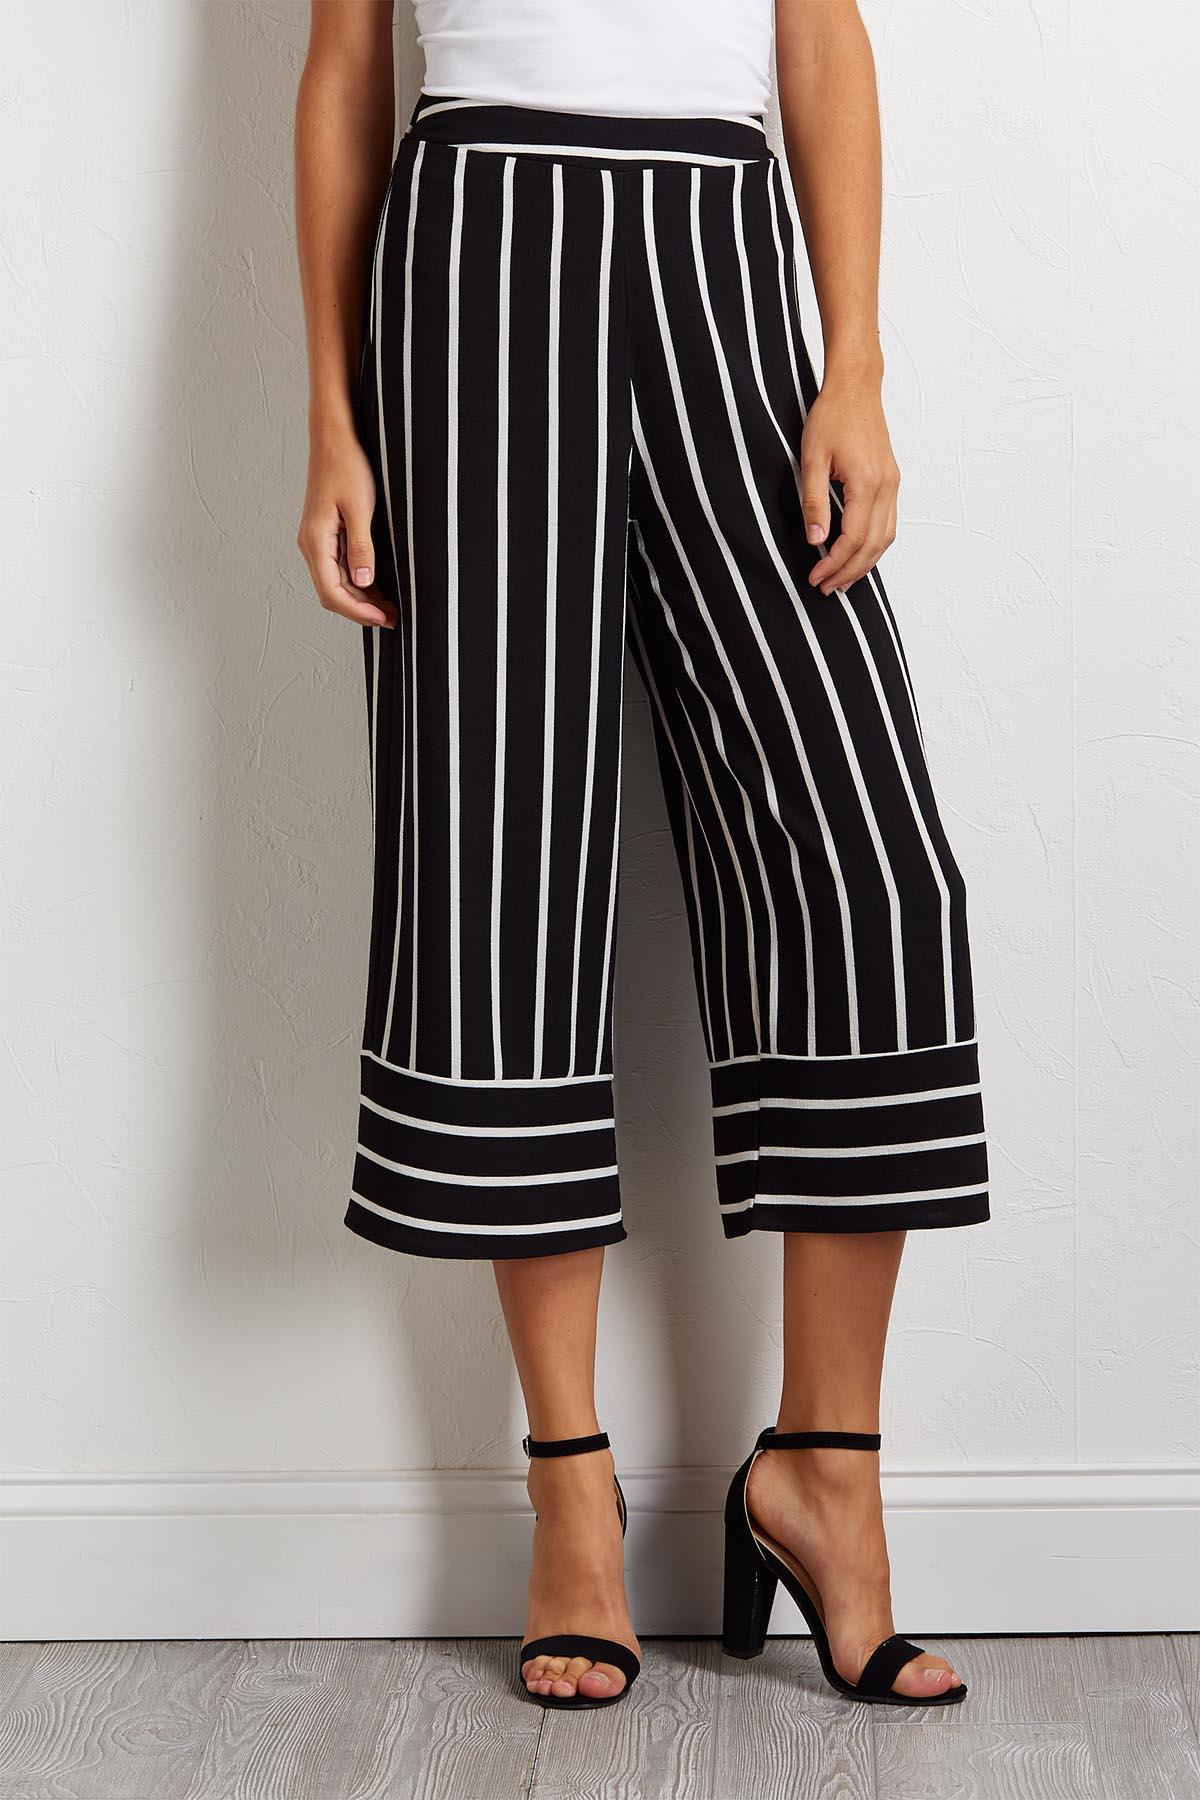 Cropped Black And White Pants